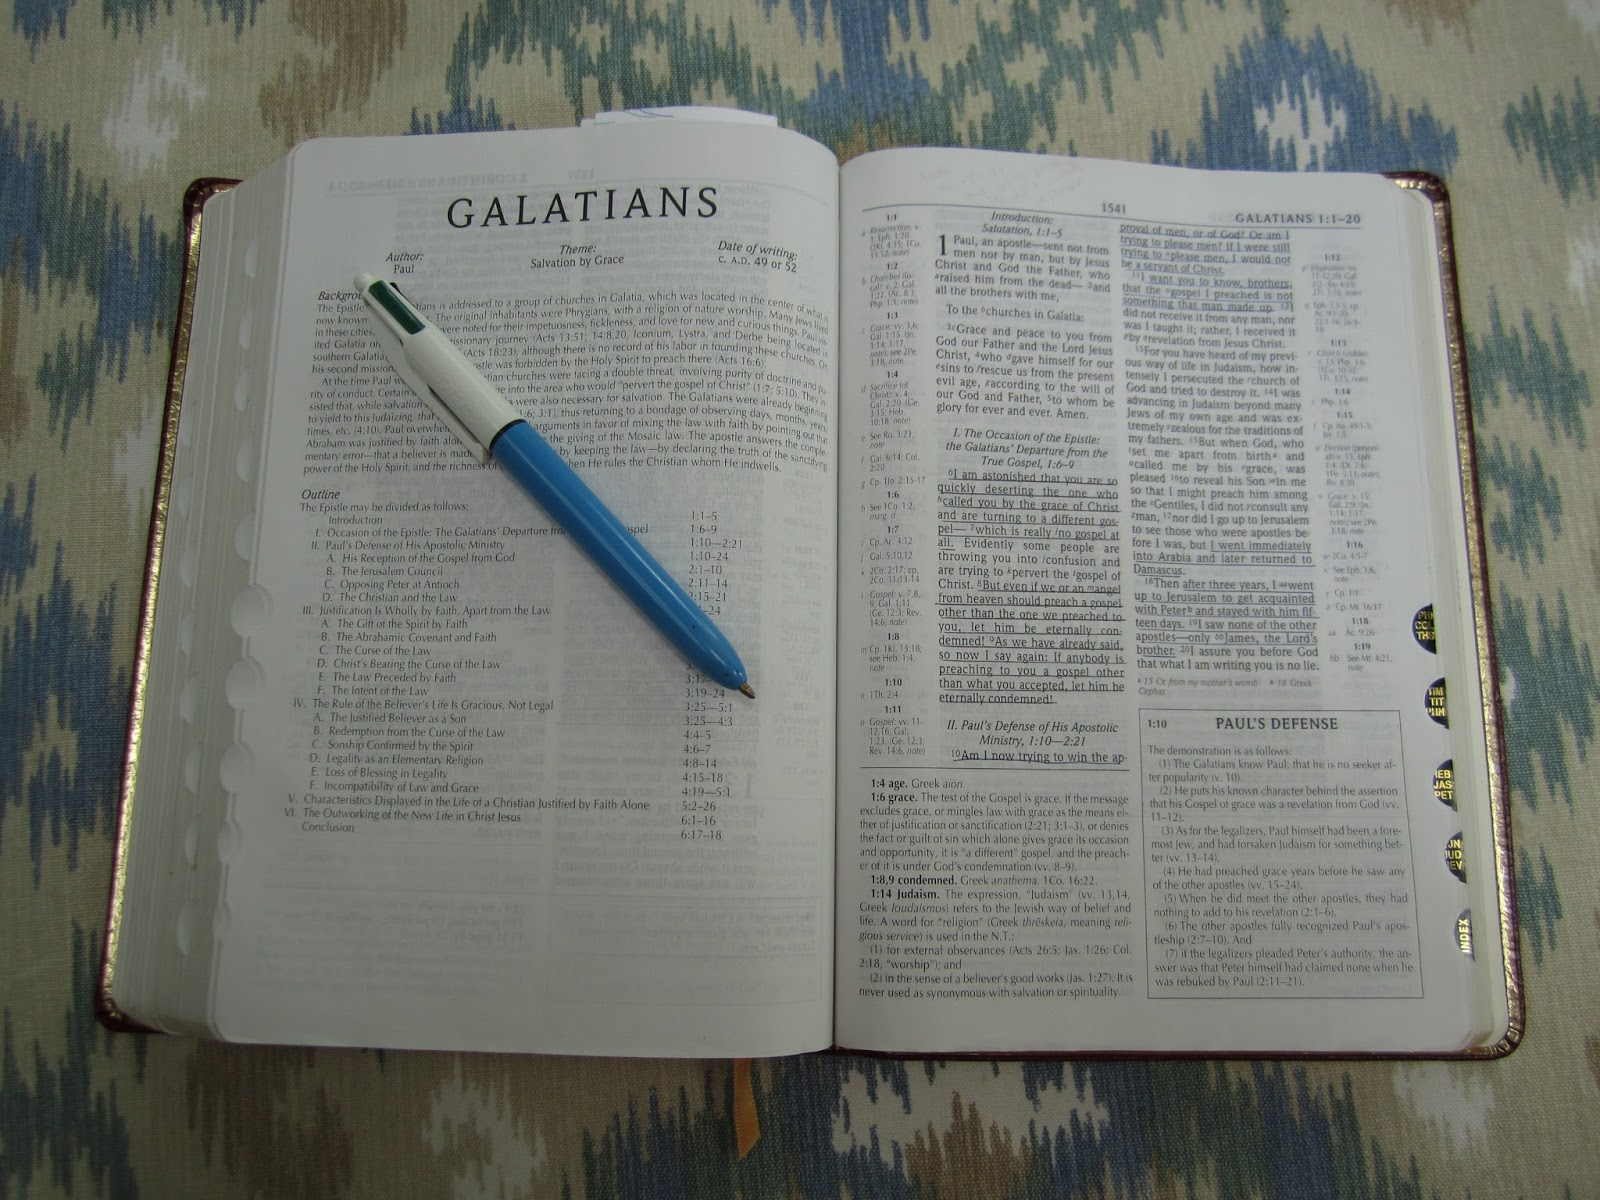 an analysis of the letter of galatians in the bible This epistle of st paul to the galatians presents the theme of justification by his second missionary journey (acts 16:6) the letter of st paul to the galatians was actually his letter to the ephesians in the new testament of the bible the conversion of saul.